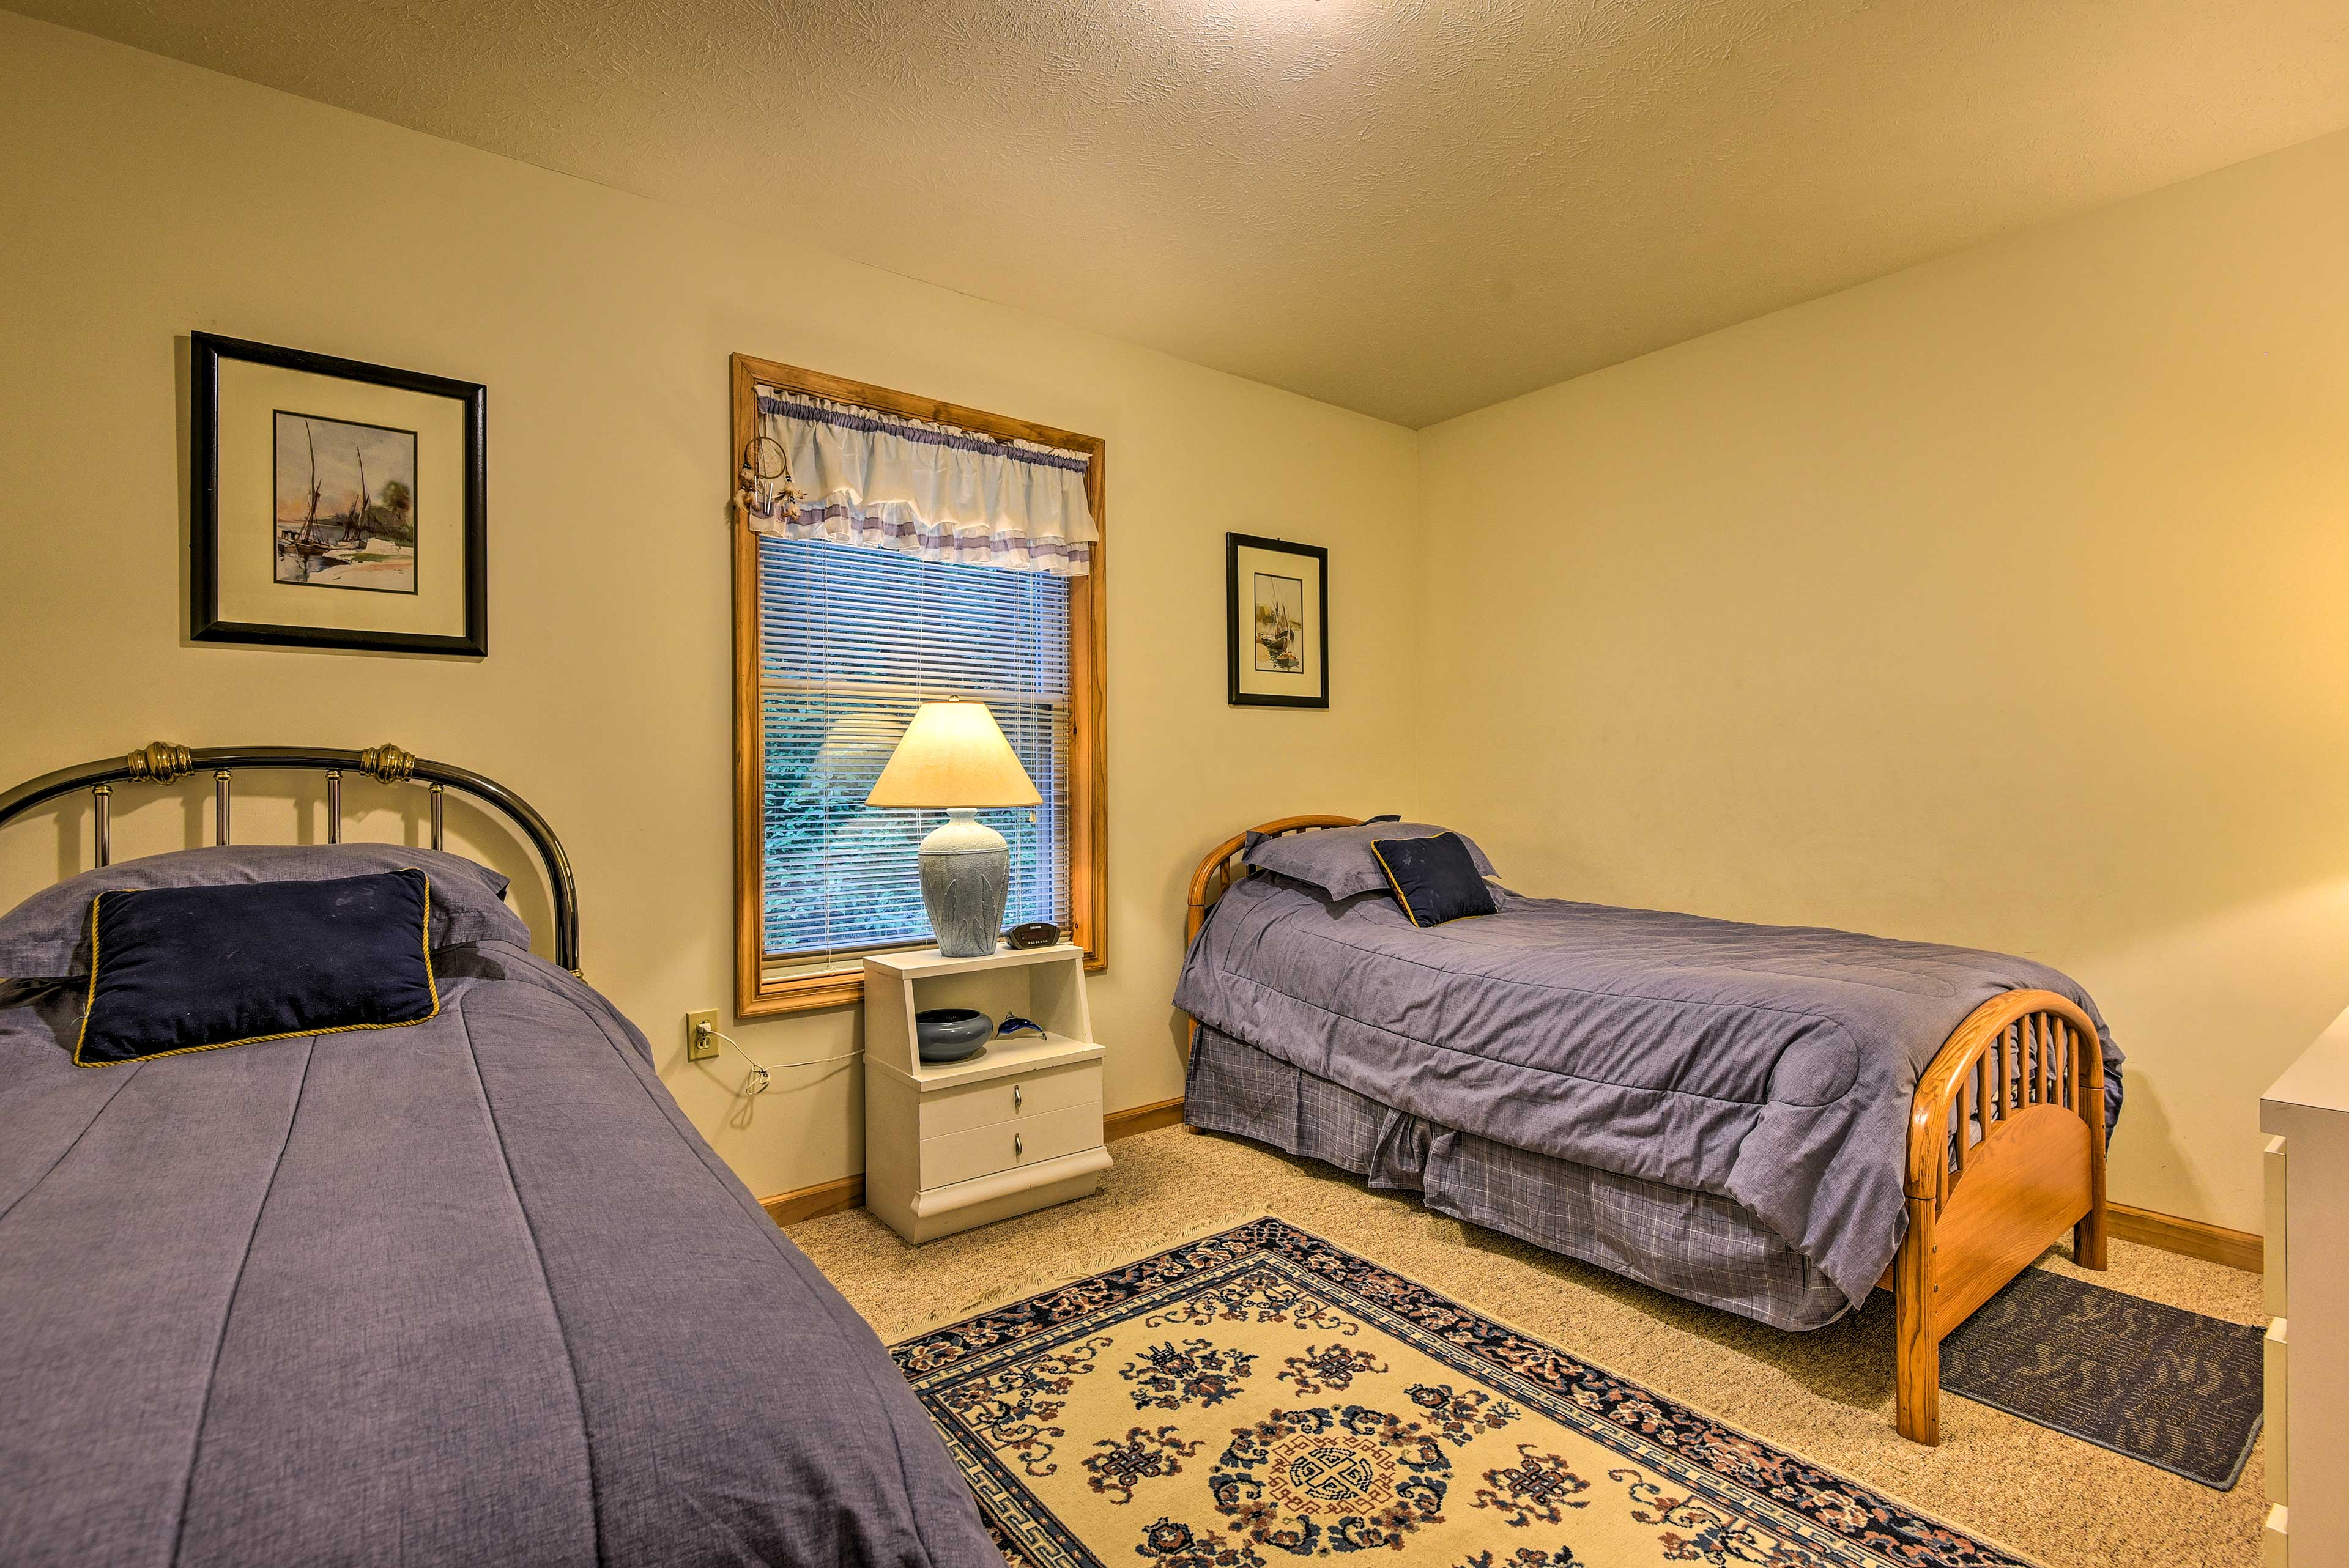 The kiddos will love this room, complete with 2 twin beds.